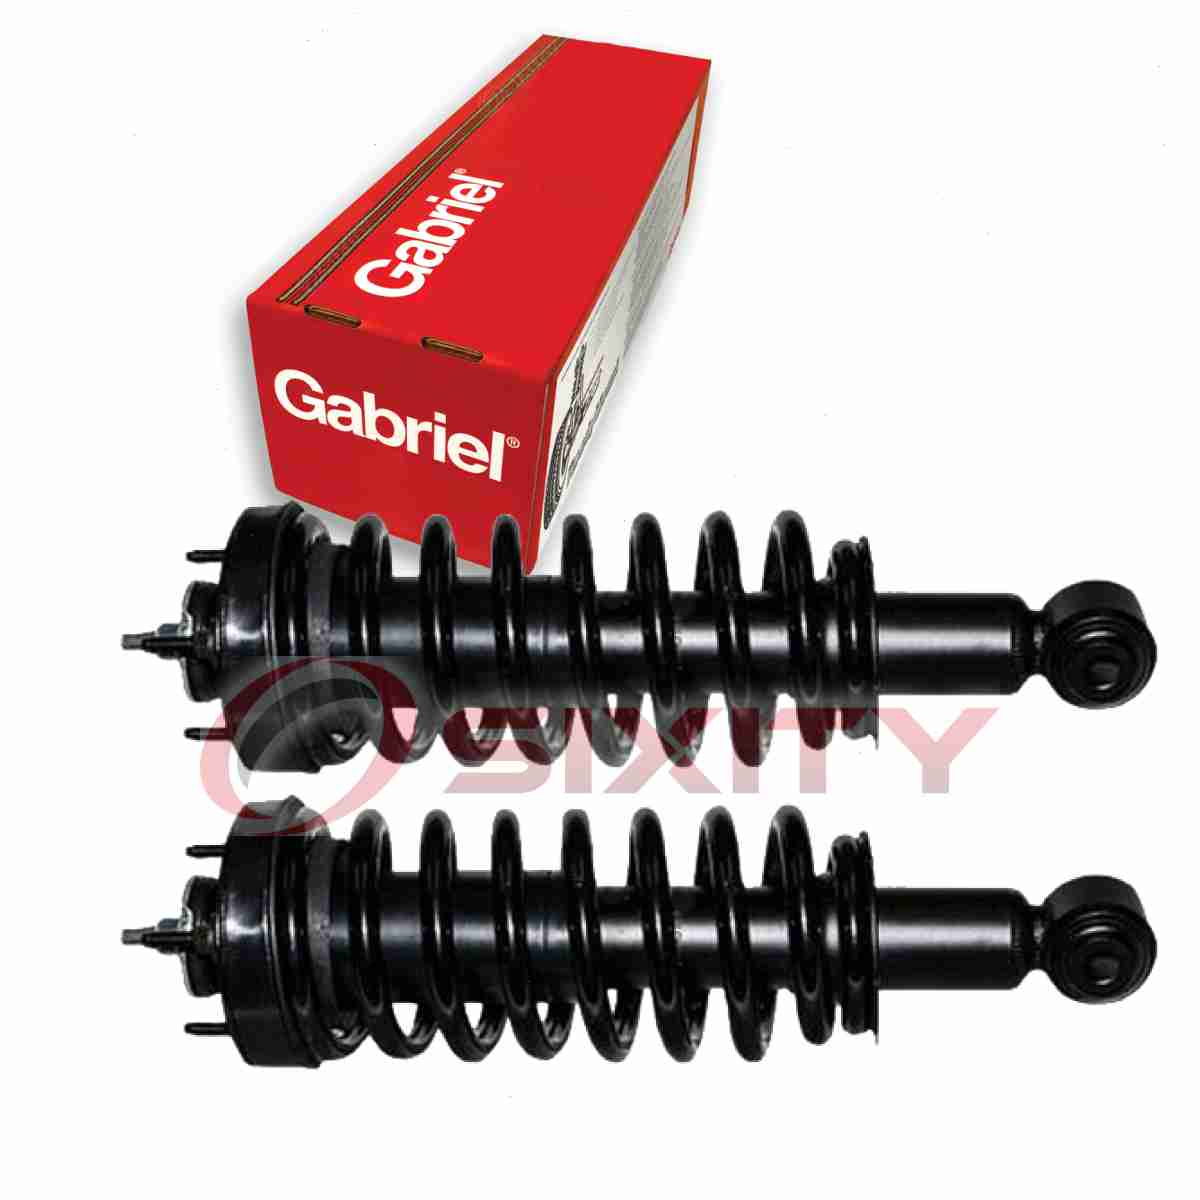 hight resolution of in 1907 gabriel invented the original shock absorber followed by the first hydraulic shock absorber the first adjustable shock absorber and the first air